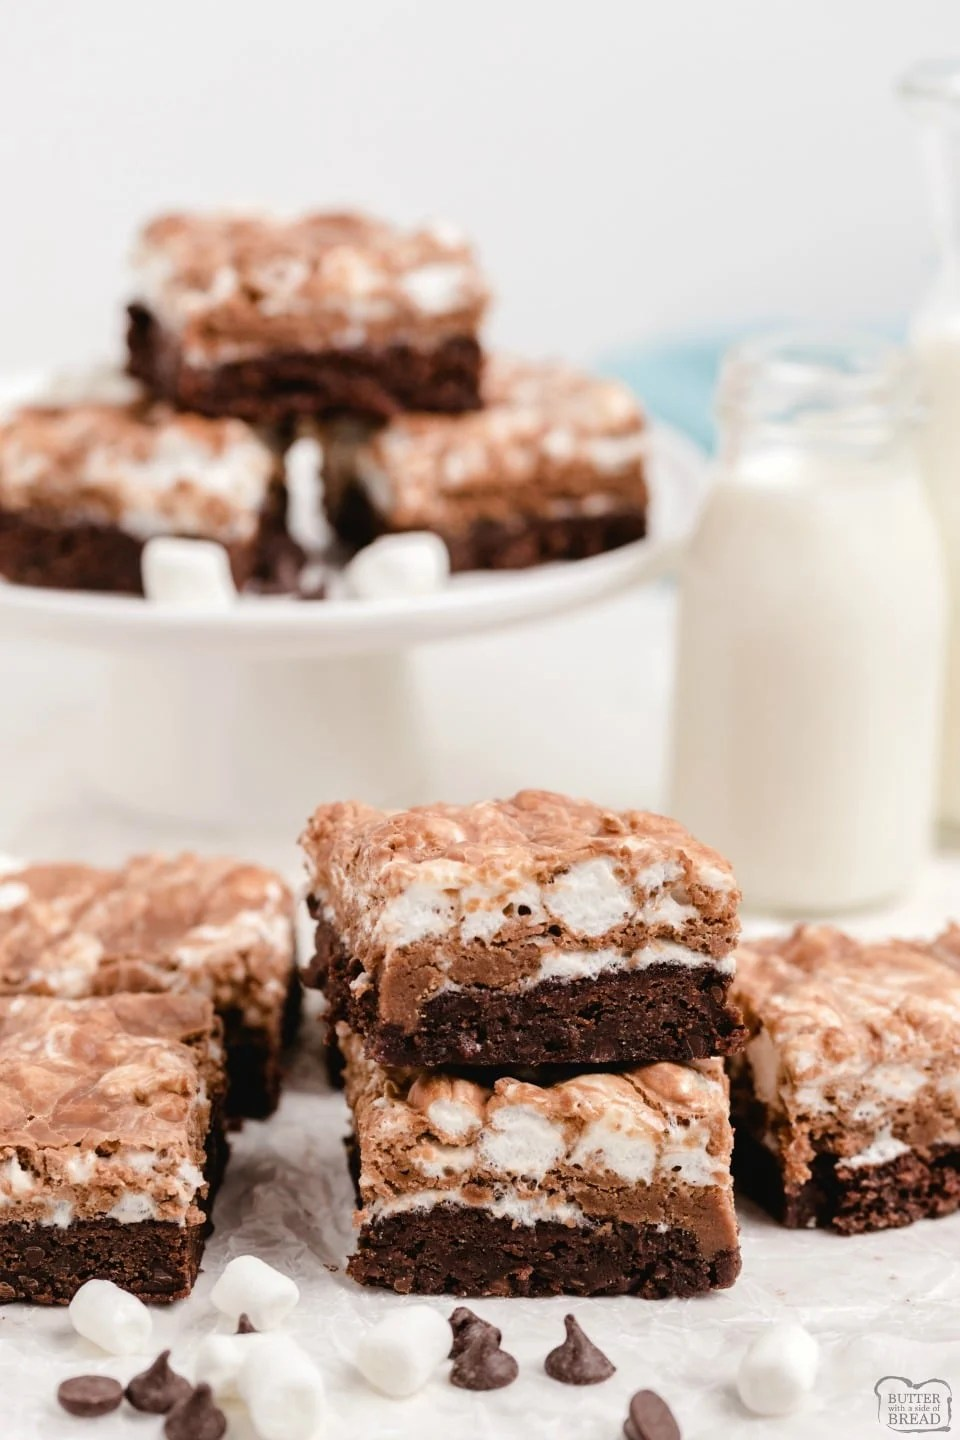 Best Homemade Marshmallow Brownies recipe